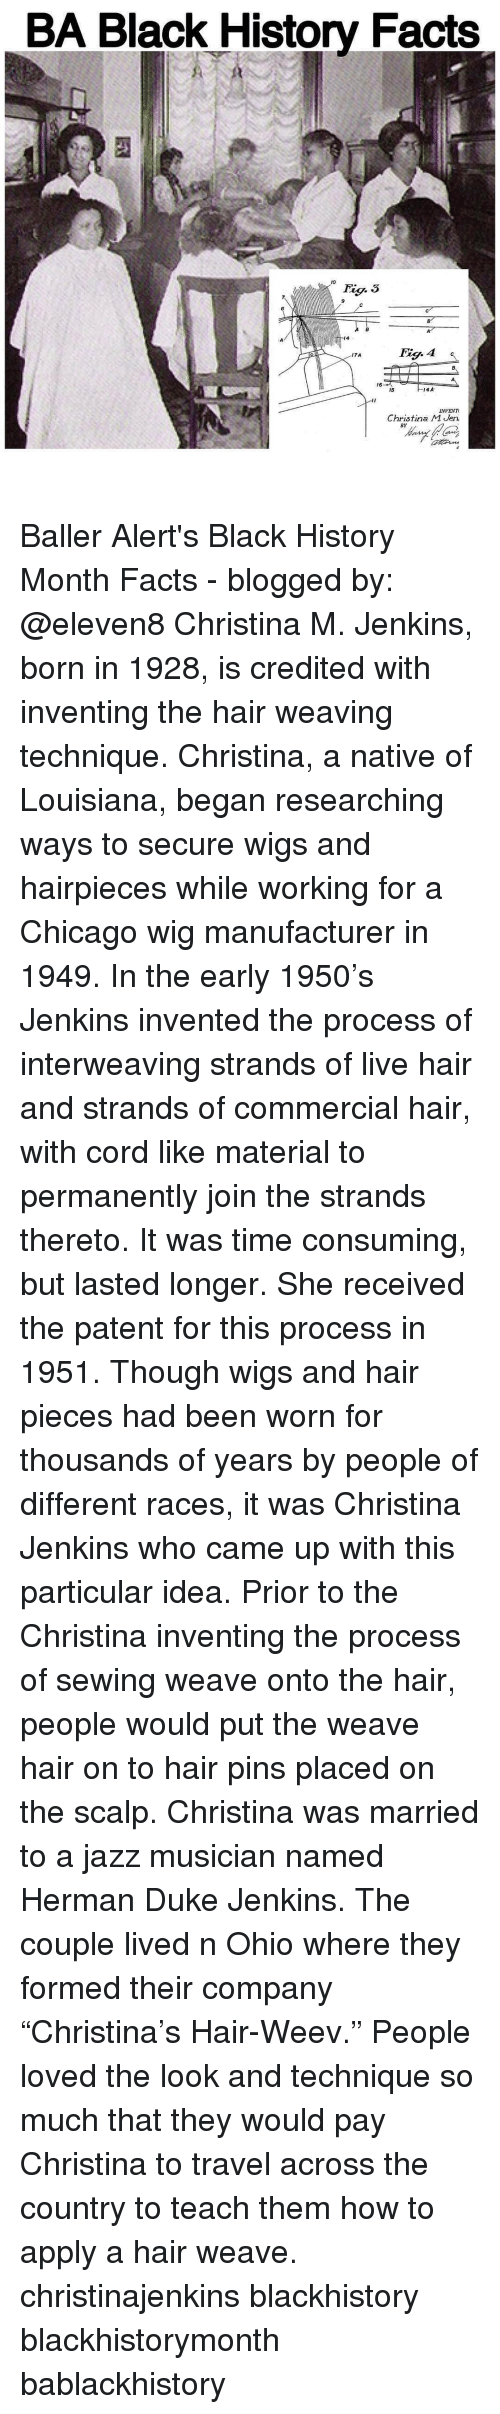 """nativism: BA Black History Facts  MO  4A  15  INVENT  Christina M Jen.  BY Baller Alert's Black History Month Facts - blogged by: @eleven8 Christina M. Jenkins, born in 1928, is credited with inventing the hair weaving technique. Christina, a native of Louisiana, began researching ways to secure wigs and hairpieces while working for a Chicago wig manufacturer in 1949. In the early 1950's Jenkins invented the process of interweaving strands of live hair and strands of commercial hair, with cord like material to permanently join the strands thereto. It was time consuming, but lasted longer. She received the patent for this process in 1951. Though wigs and hair pieces had been worn for thousands of years by people of different races, it was Christina Jenkins who came up with this particular idea. Prior to the Christina inventing the process of sewing weave onto the hair, people would put the weave hair on to hair pins placed on the scalp. Christina was married to a jazz musician named Herman Duke Jenkins. The couple lived n Ohio where they formed their company """"Christina's Hair-Weev."""" People loved the look and technique so much that they would pay Christina to travel across the country to teach them how to apply a hair weave. christinajenkins blackhistory blackhistorymonth bablackhistory"""